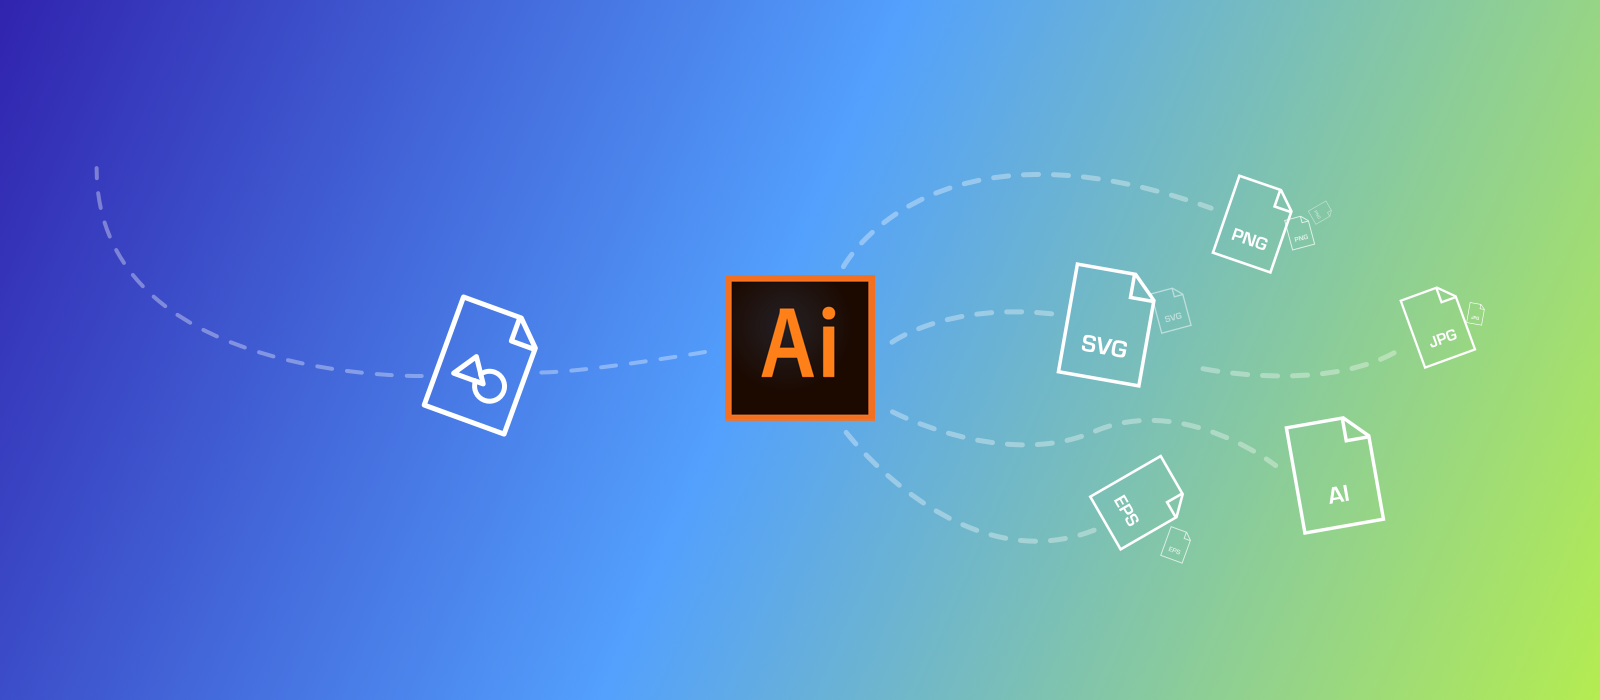 How To Export Vector Icons To Multiple Sizes And Formats In Adobe Illustrator By Gasper Vidovic The Iconfinder Blog